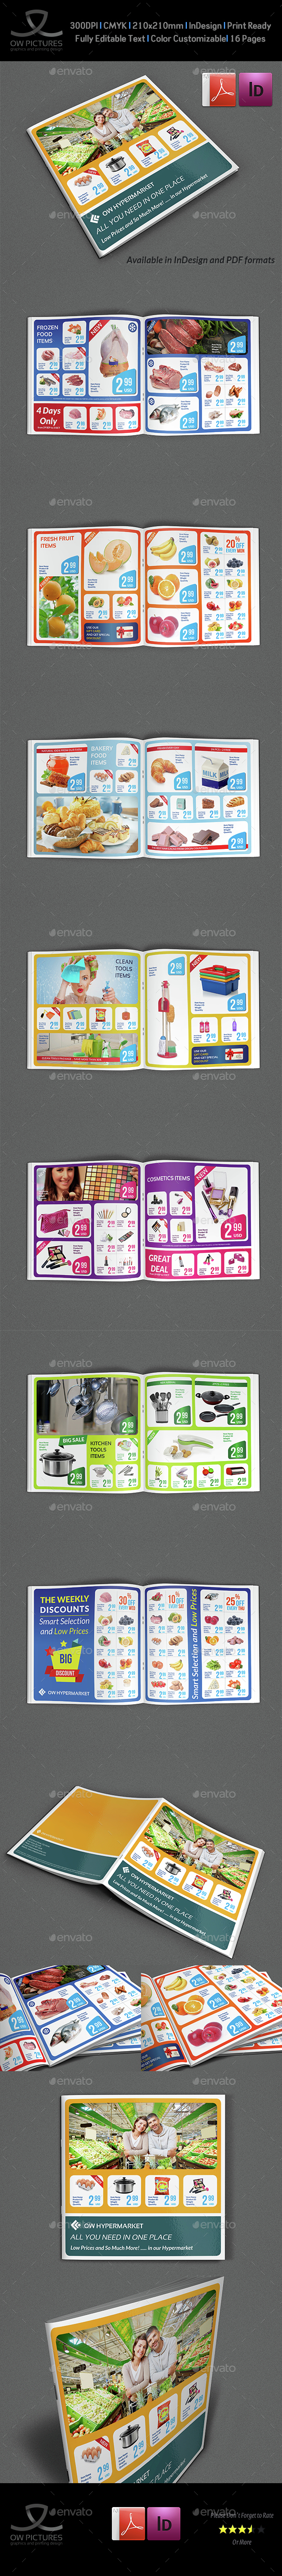 Supermarket Products Catalog Brochure Template Vol3 - Catalogs Brochures